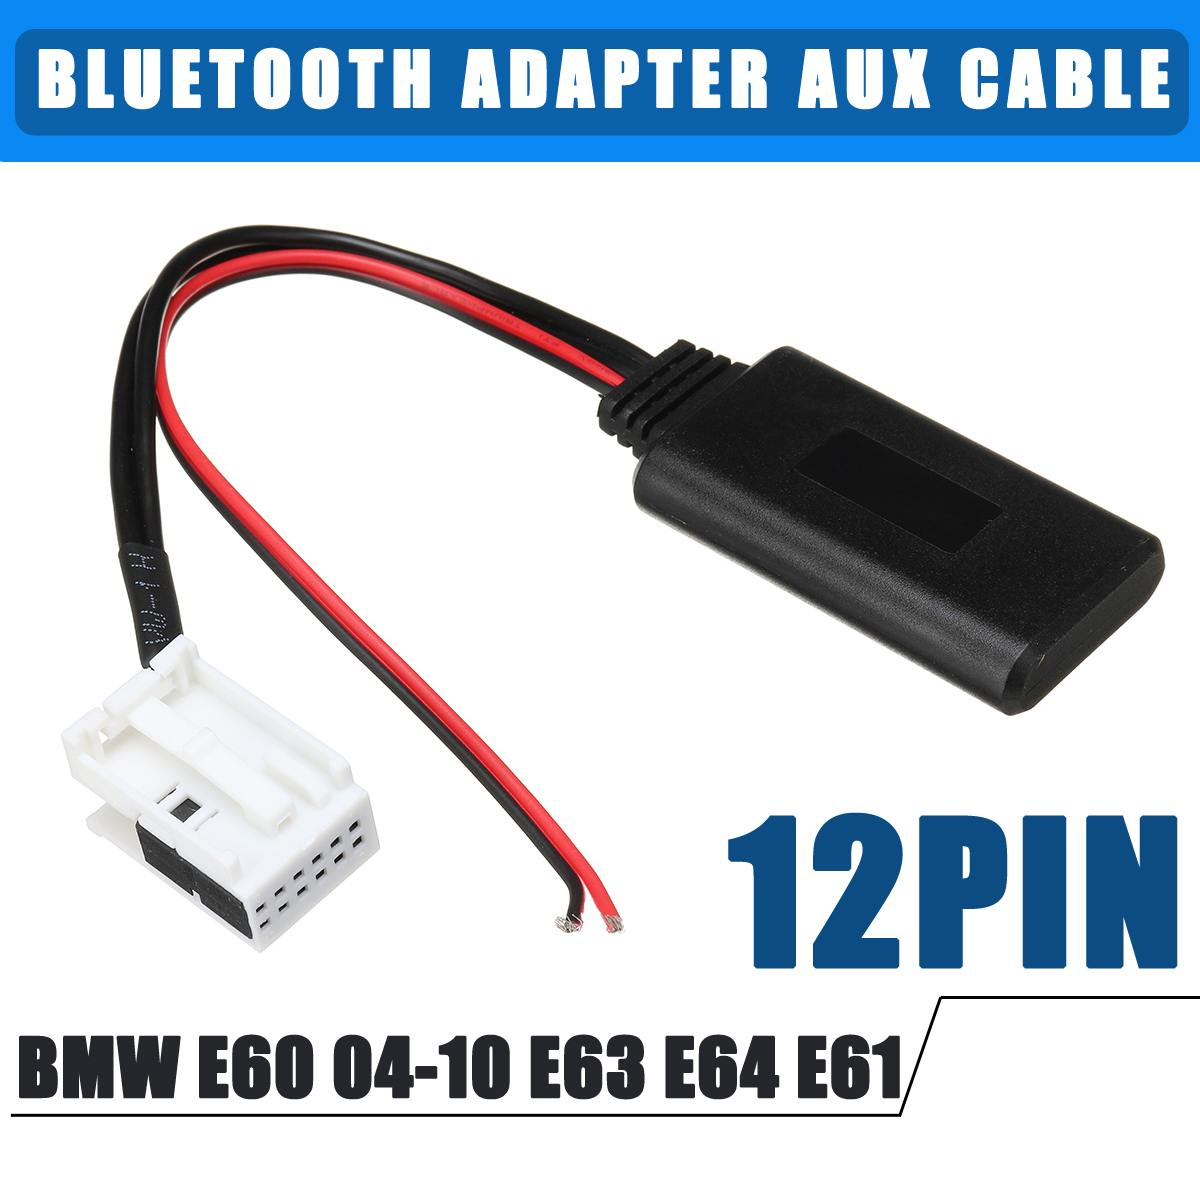 12Pin bluetooth Adapter Wireless Radio Stereo Aux Cable Connect External Audio For BMW E60 04-10 E63 E64 E61 For iPhone For iPad storage cable